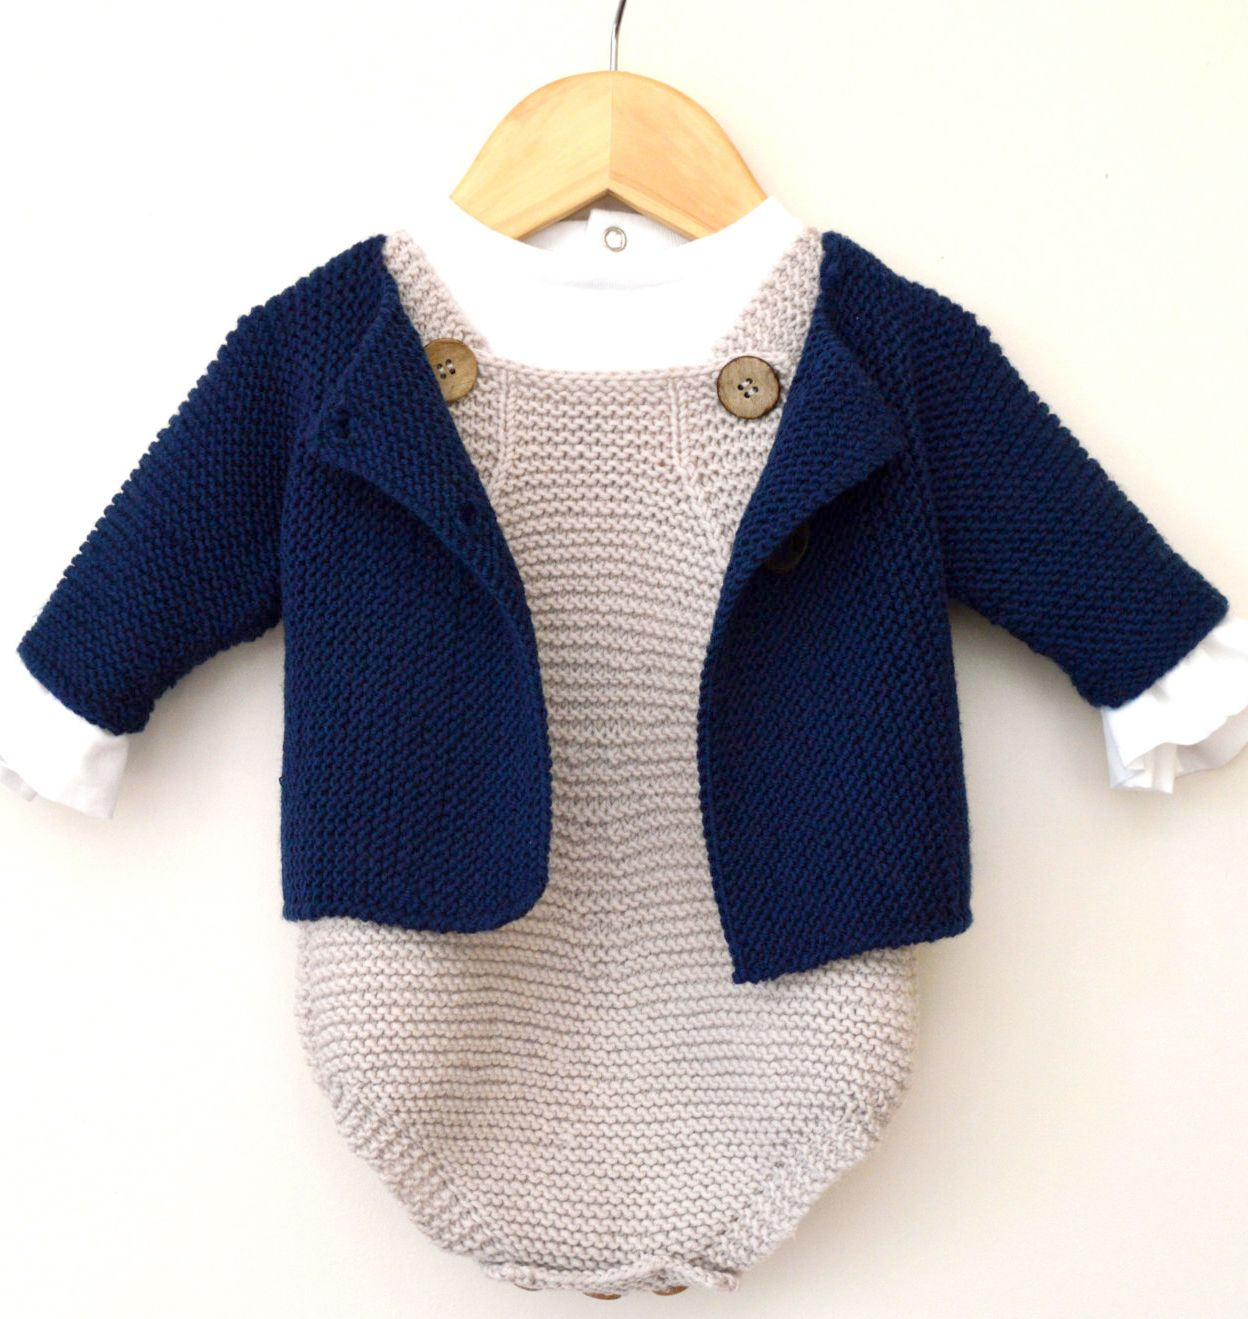 Knitting Pattern For Baby Rompers And Jacket Set Ad